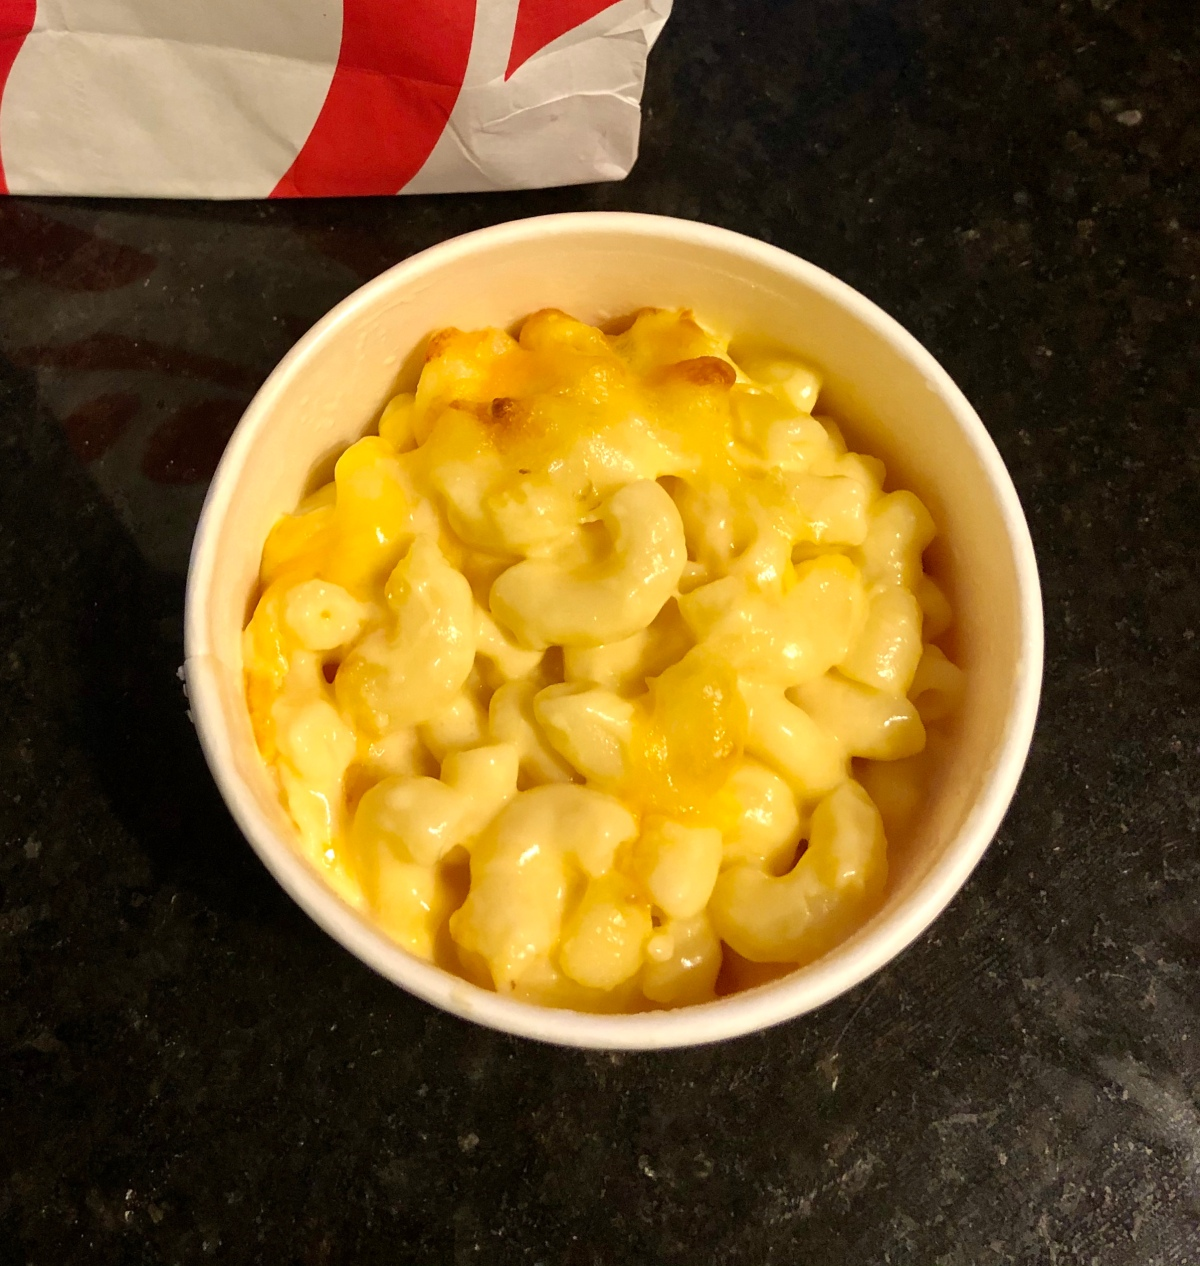 An Honest Review of Chick-Fil-A's Mac and Cheese